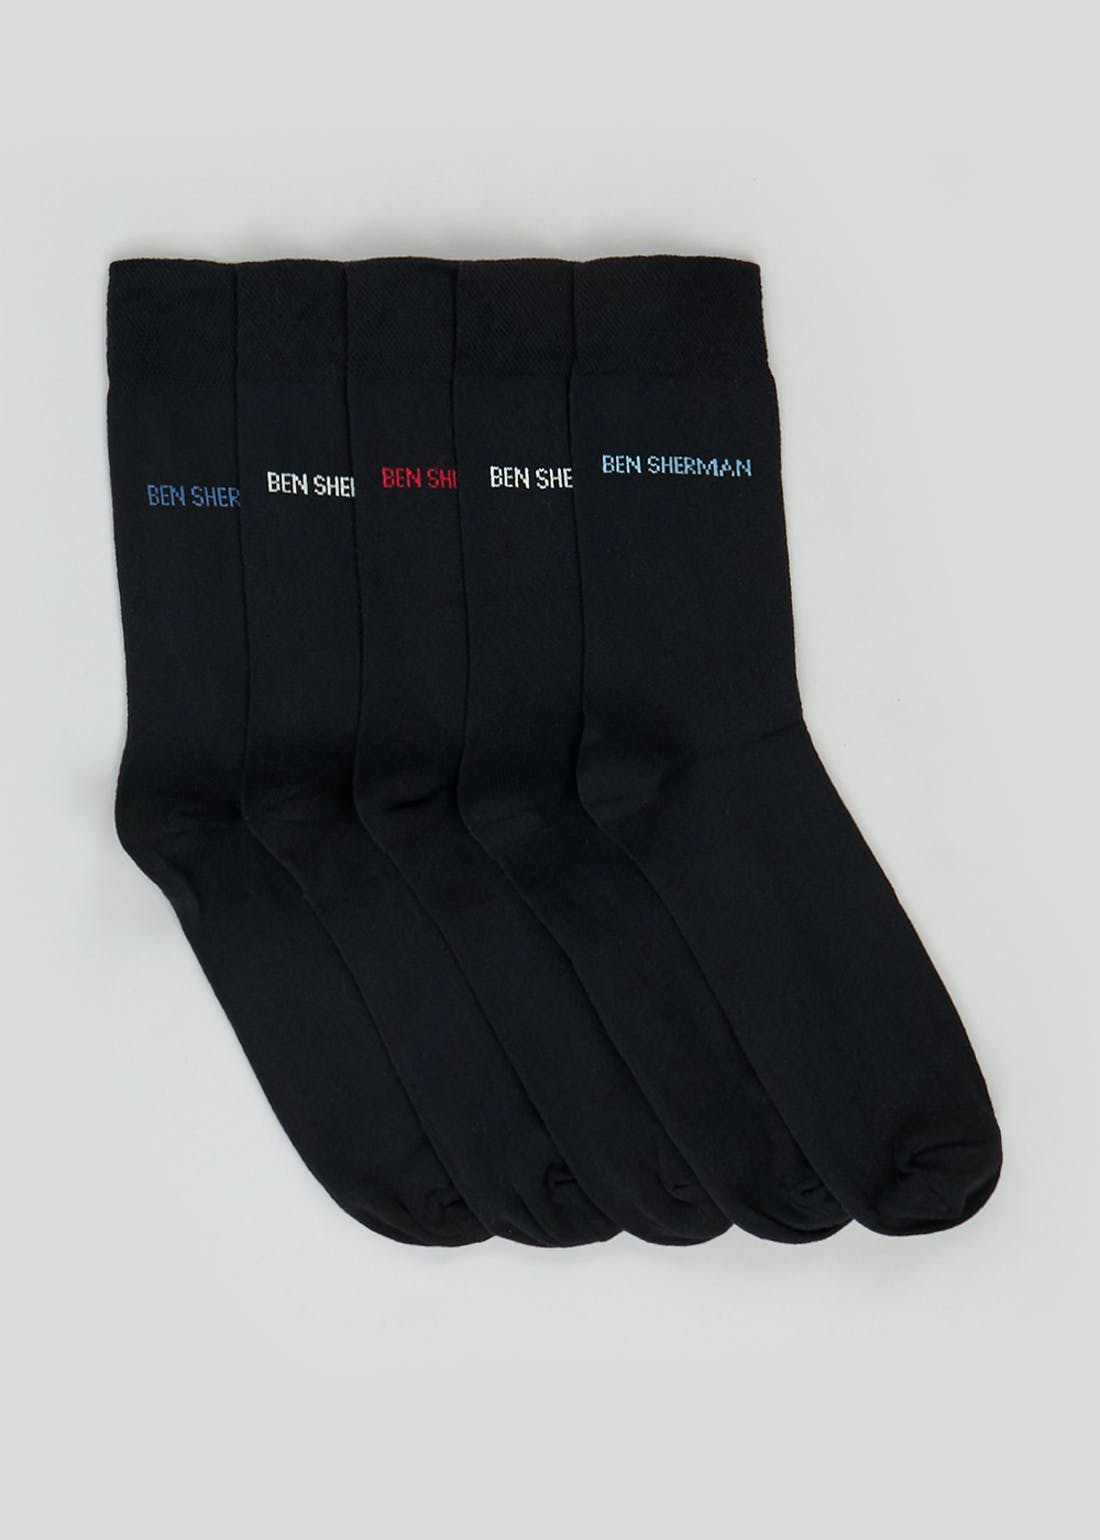 5 Pack Ben Sherman Socks